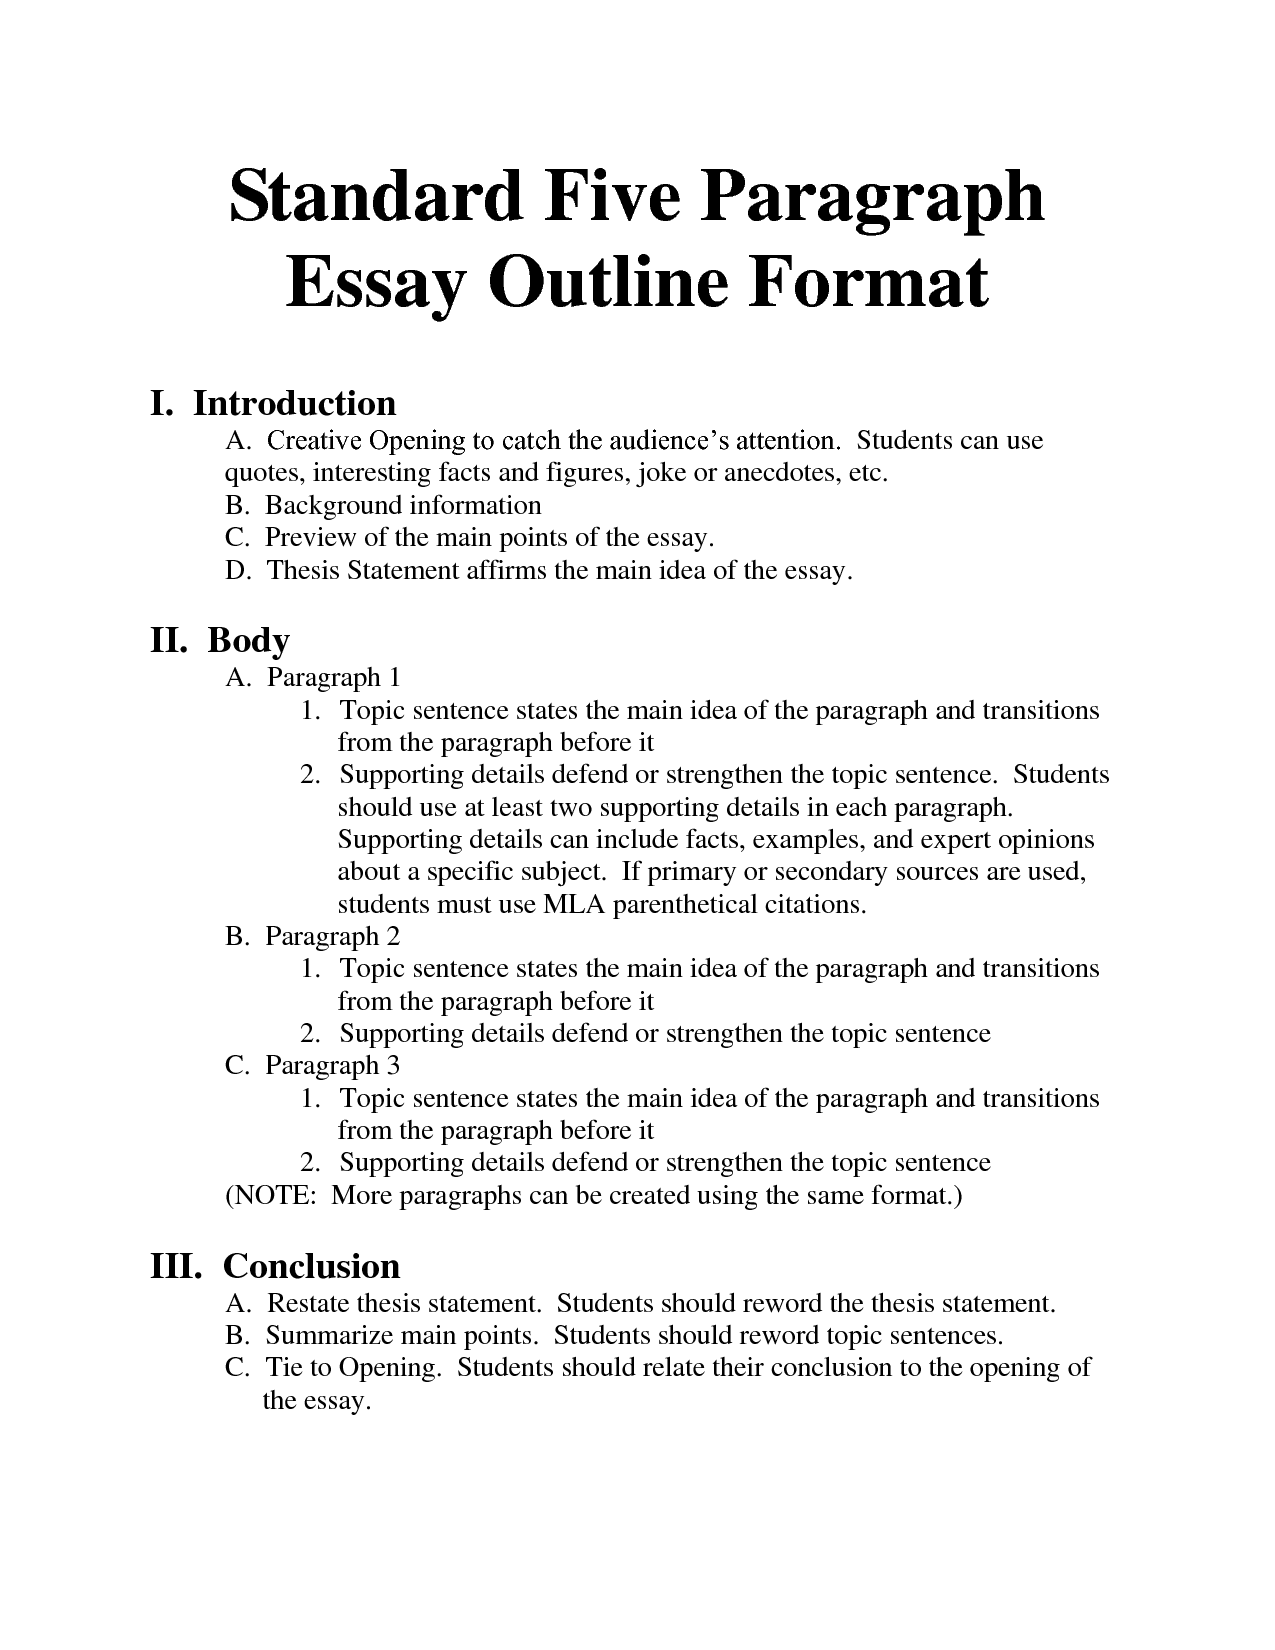 a formal essay Argument: the paper replaces an argument with a topic, giving a series of related  observations without suggesting a logic for their presentation or a reason for.